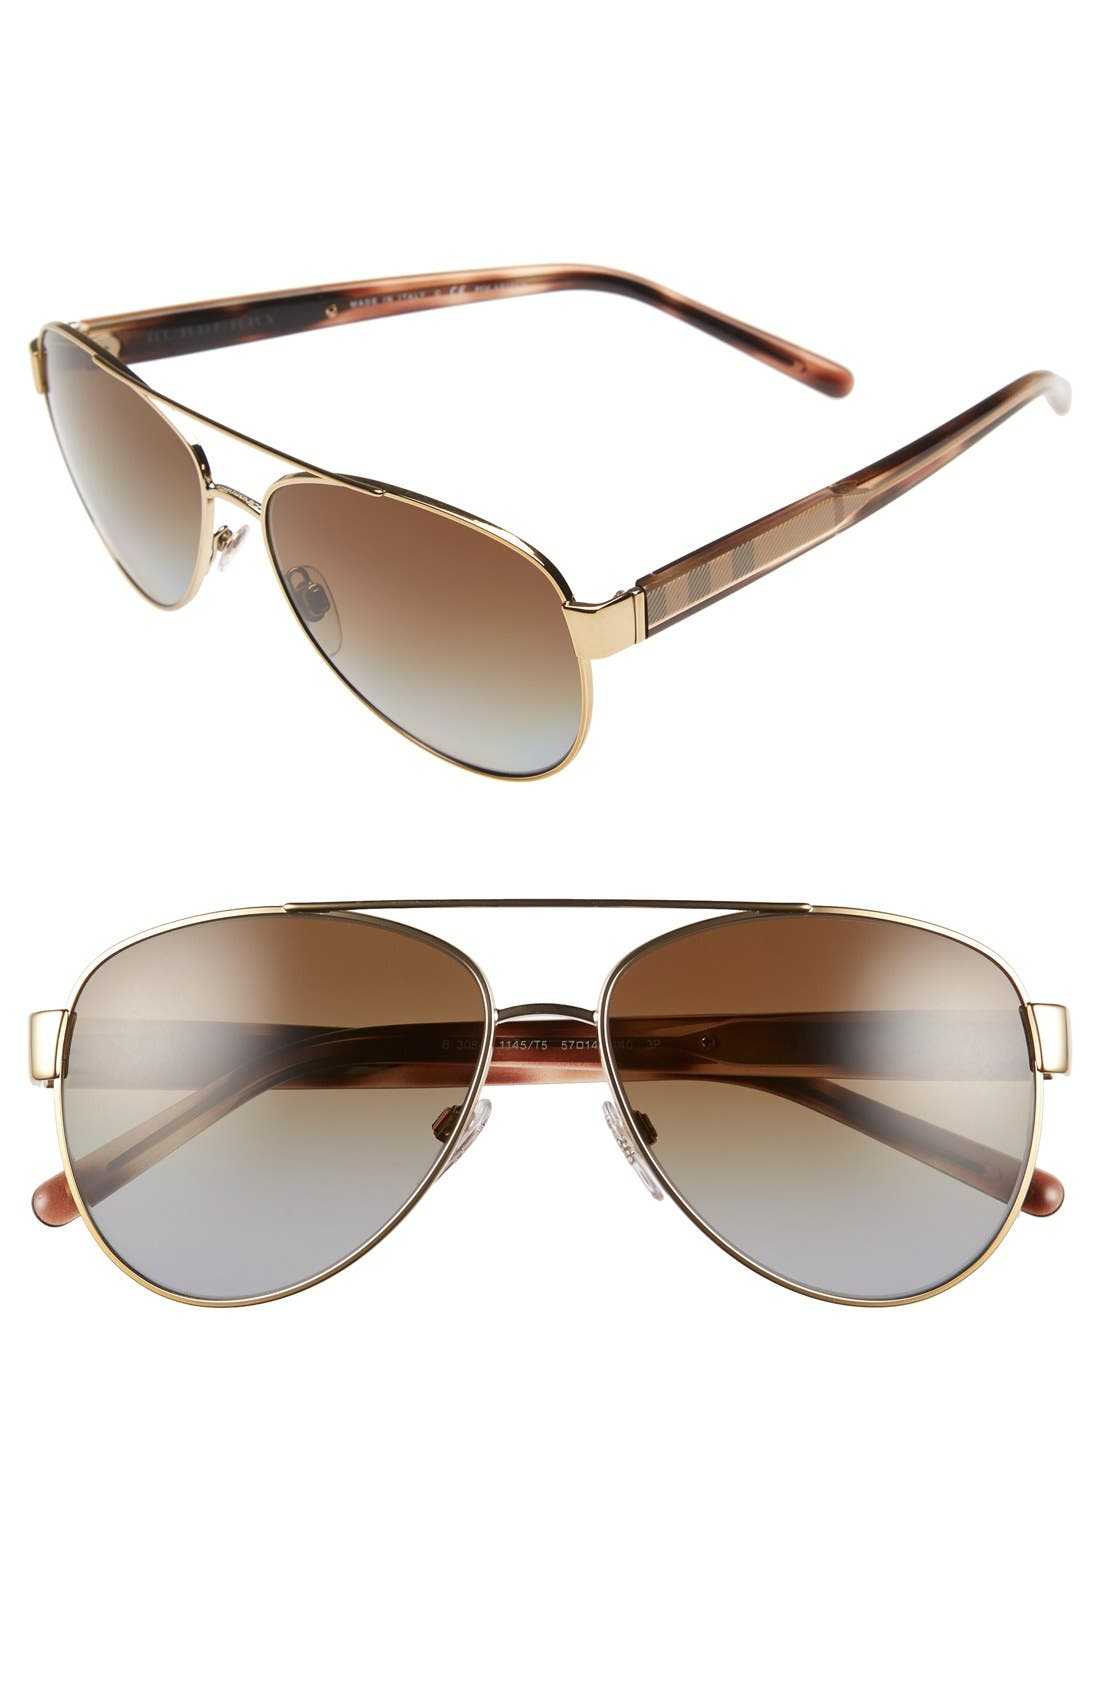 Alternate Image 1 Selected - Burberry 57mm Polarized Aviator Sunglasses